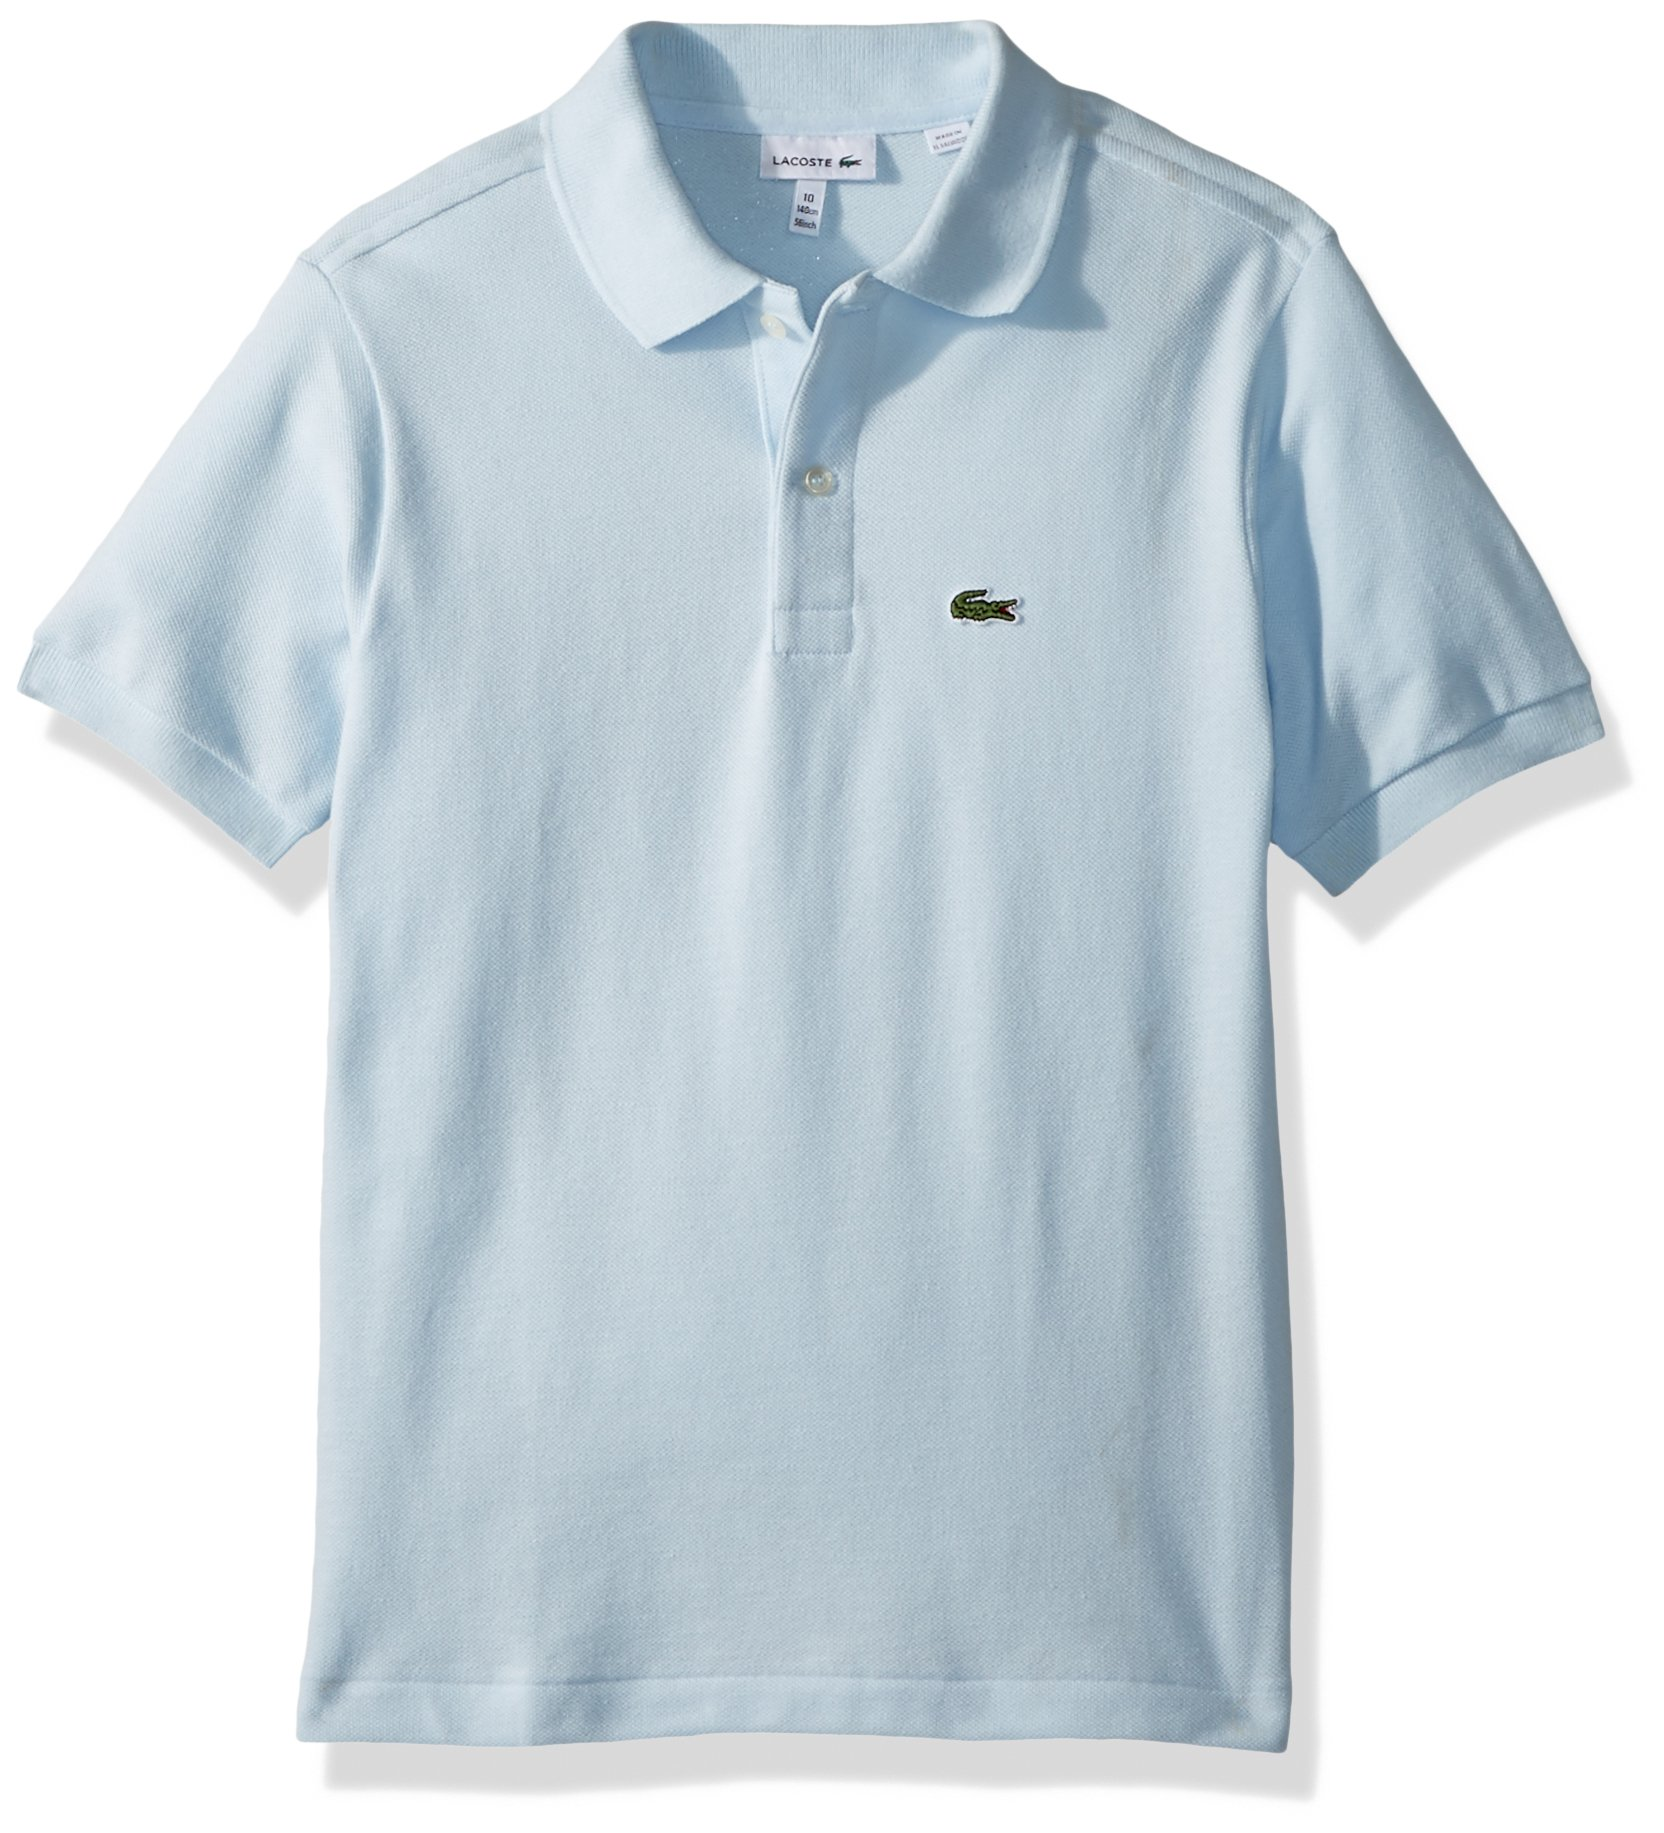 Lacoste Big Boys' Short Sleeve Classic Pique Polo, Rill, 8